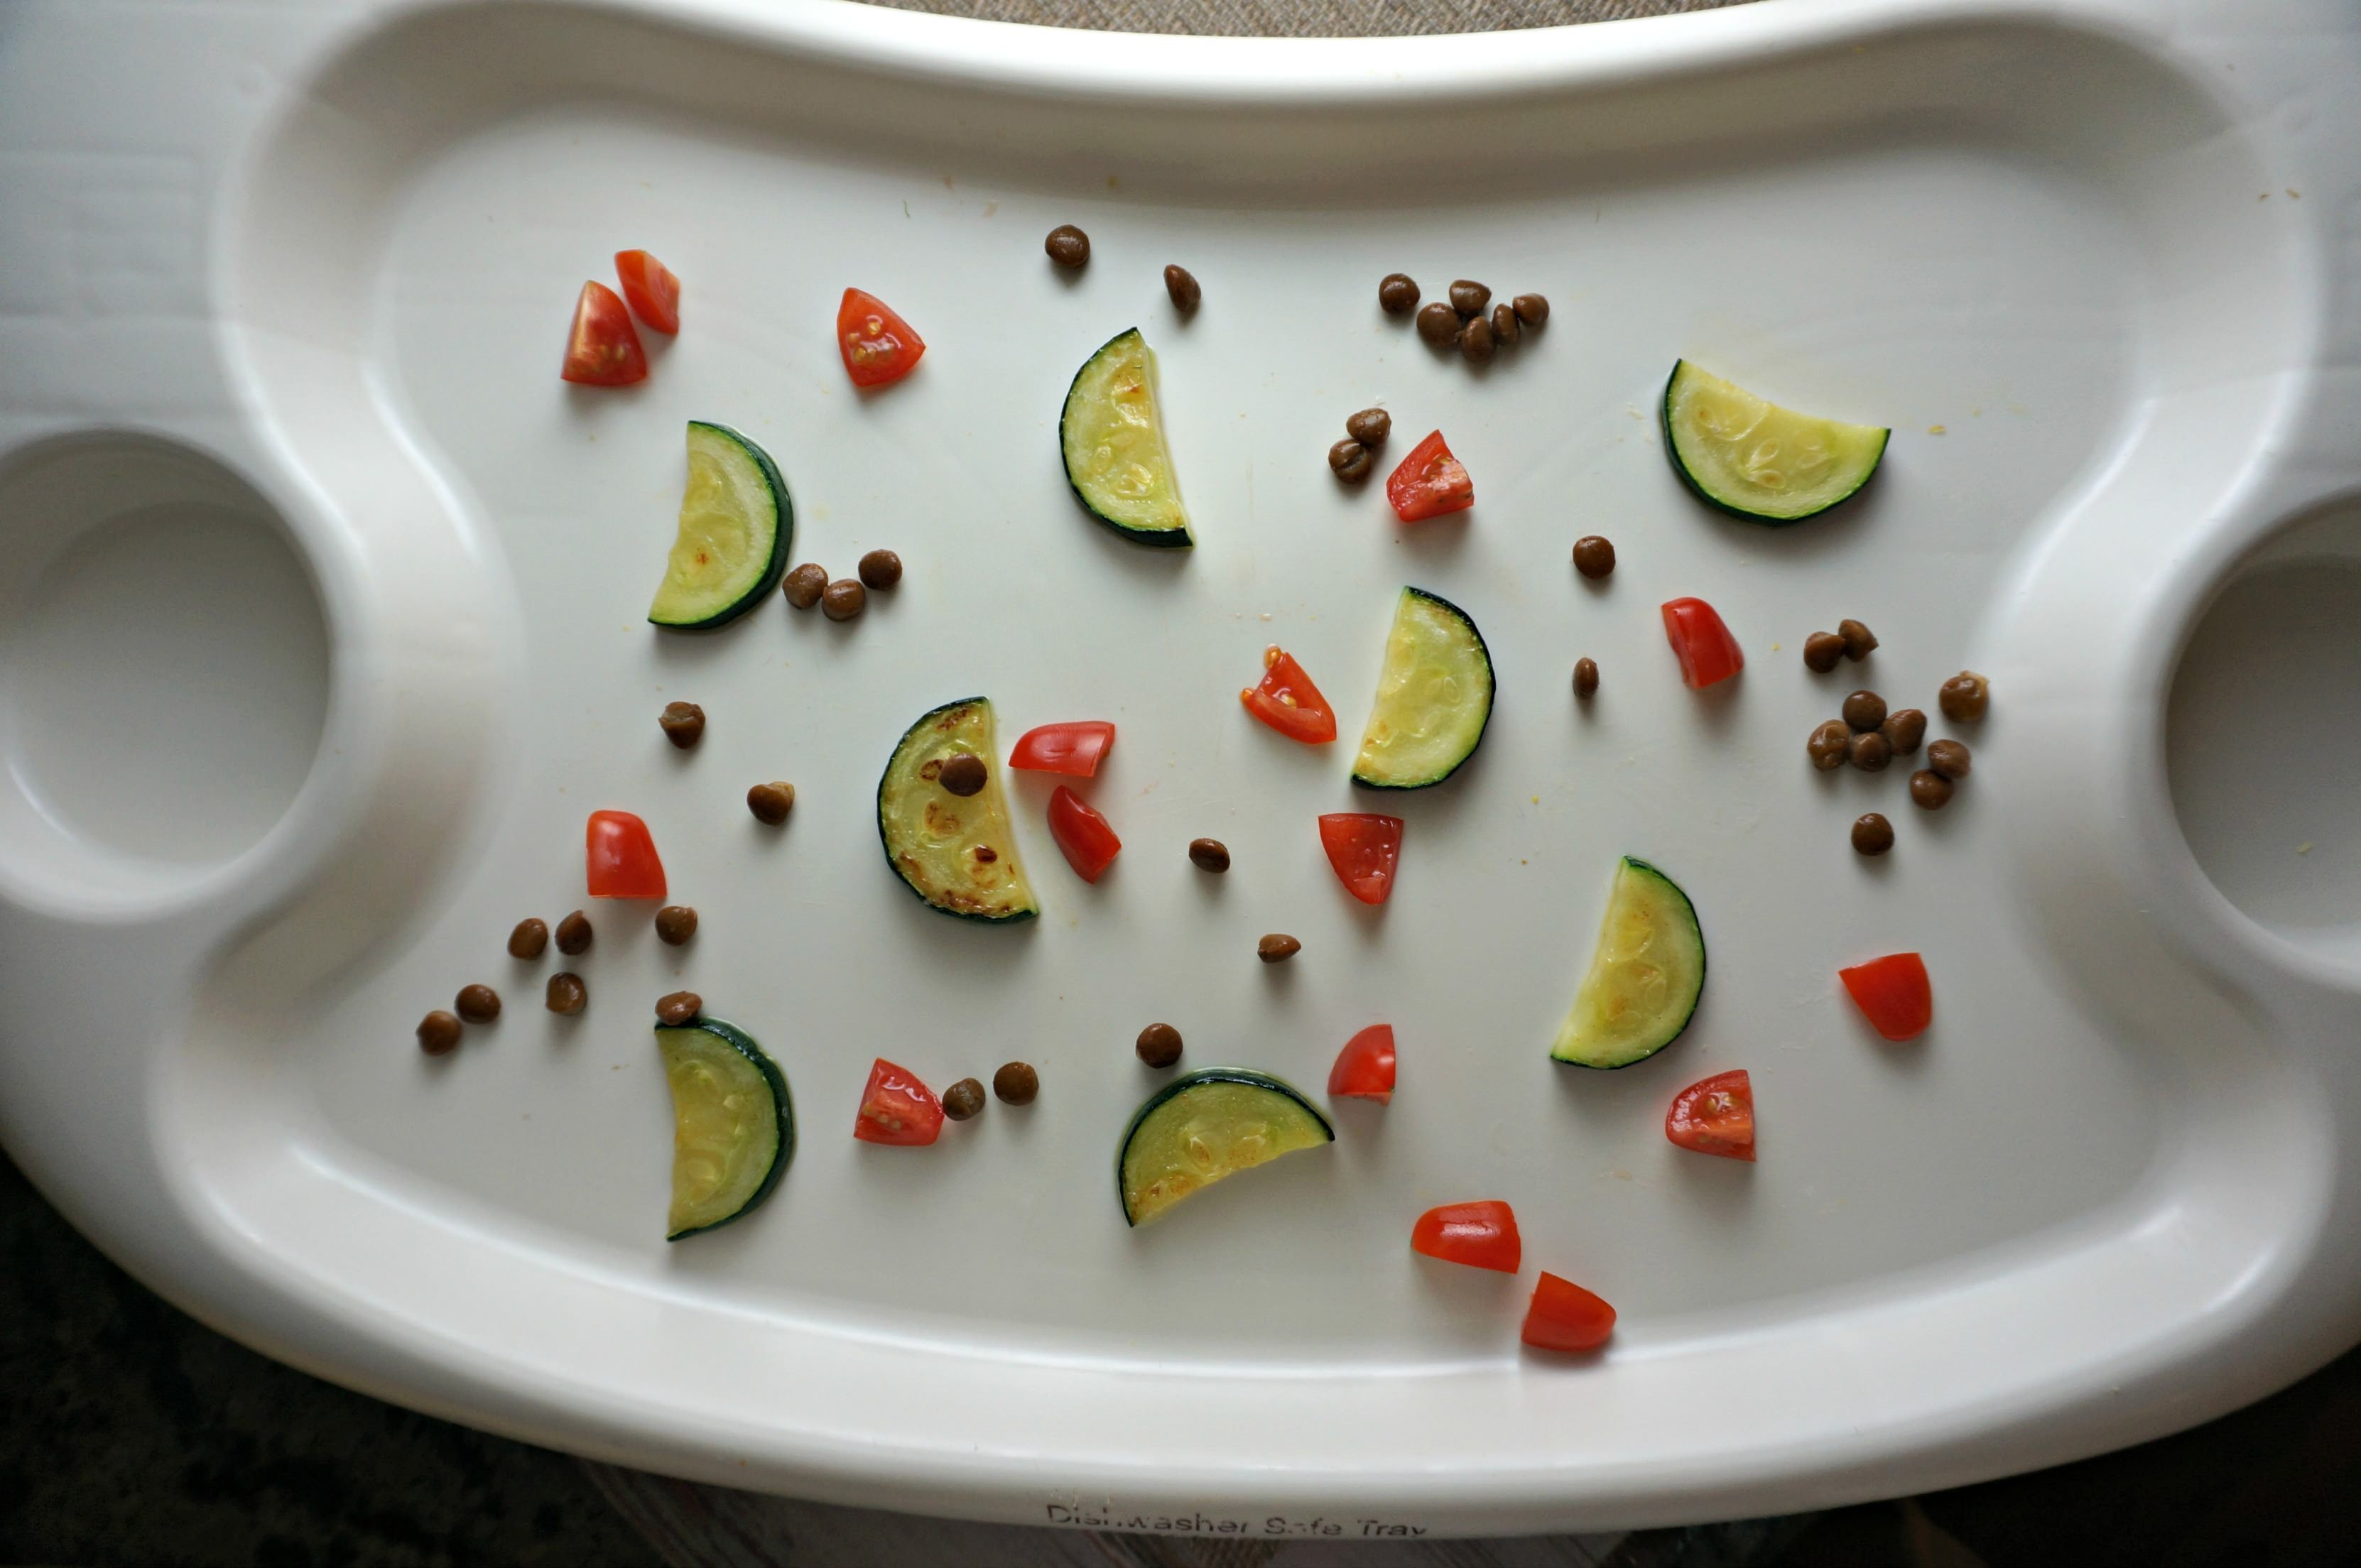 Baby led weaning meal ideas 8 months old bebe baby led weaning 8 month meals 5 forumfinder Gallery